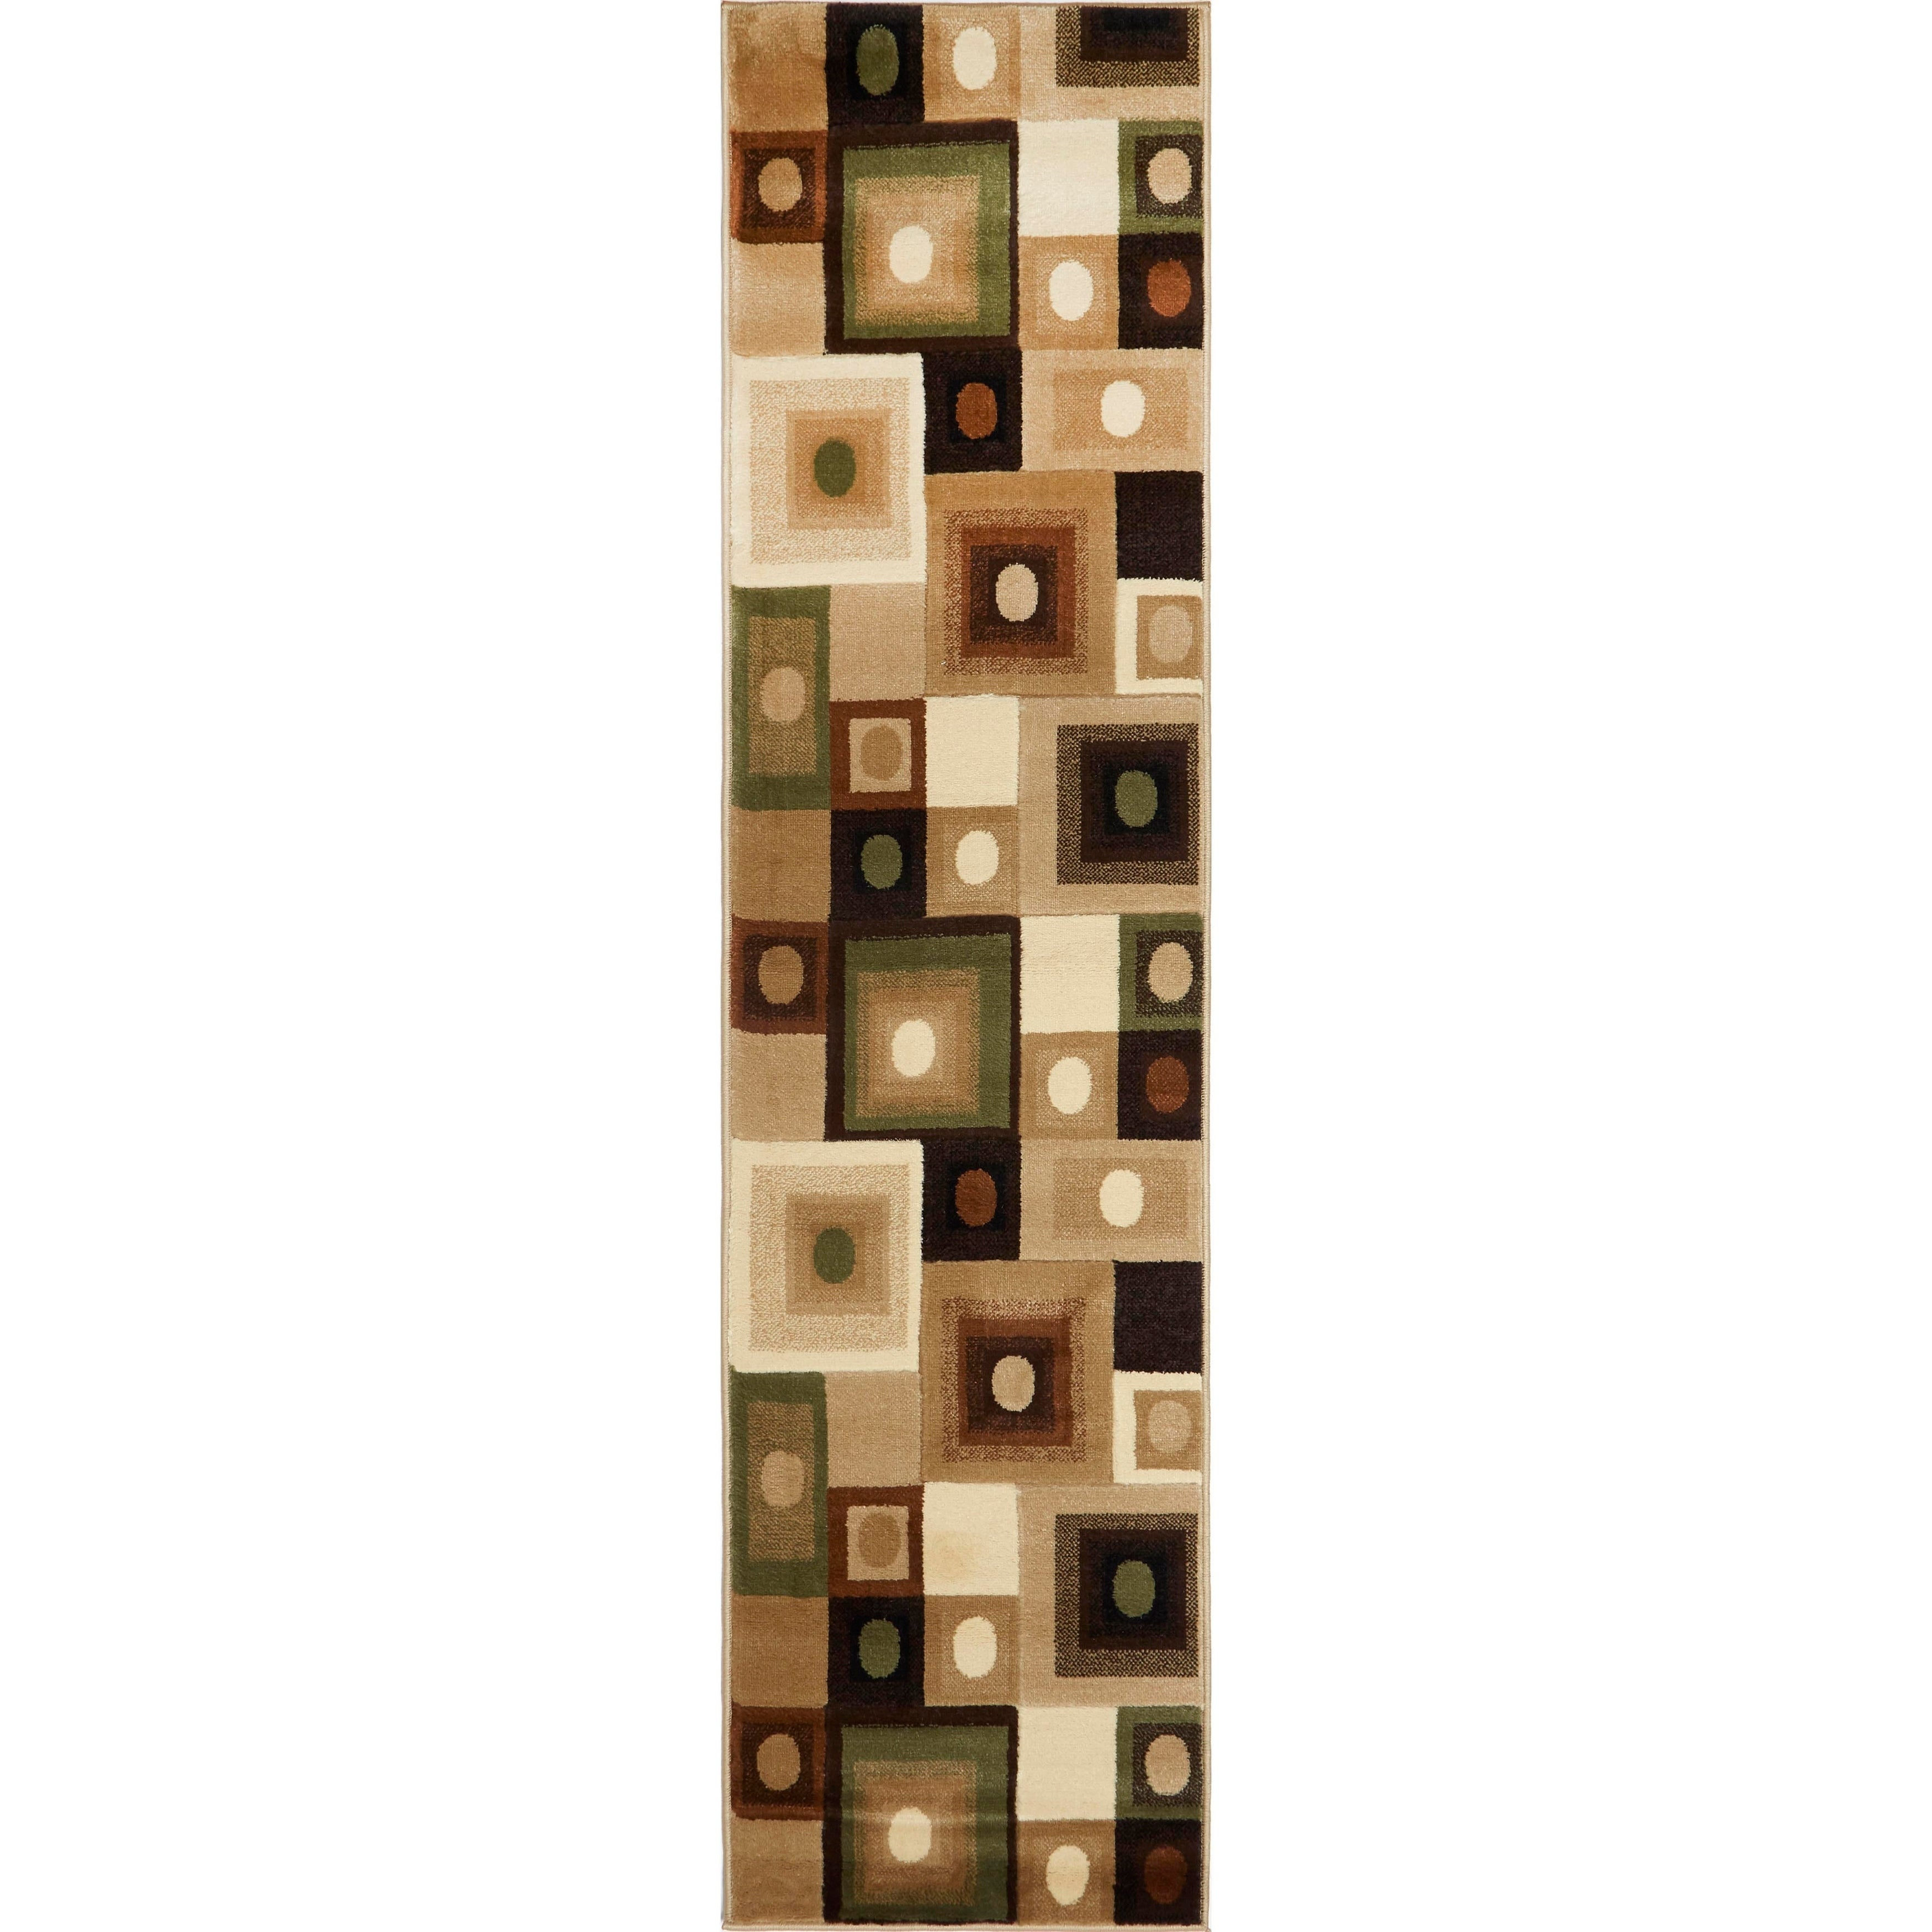 Home Dynamix Tribeca Collection Contemporary Area Rug Runner - 110 x 73 (Contemporary Brown-Green Area Rug Runner)